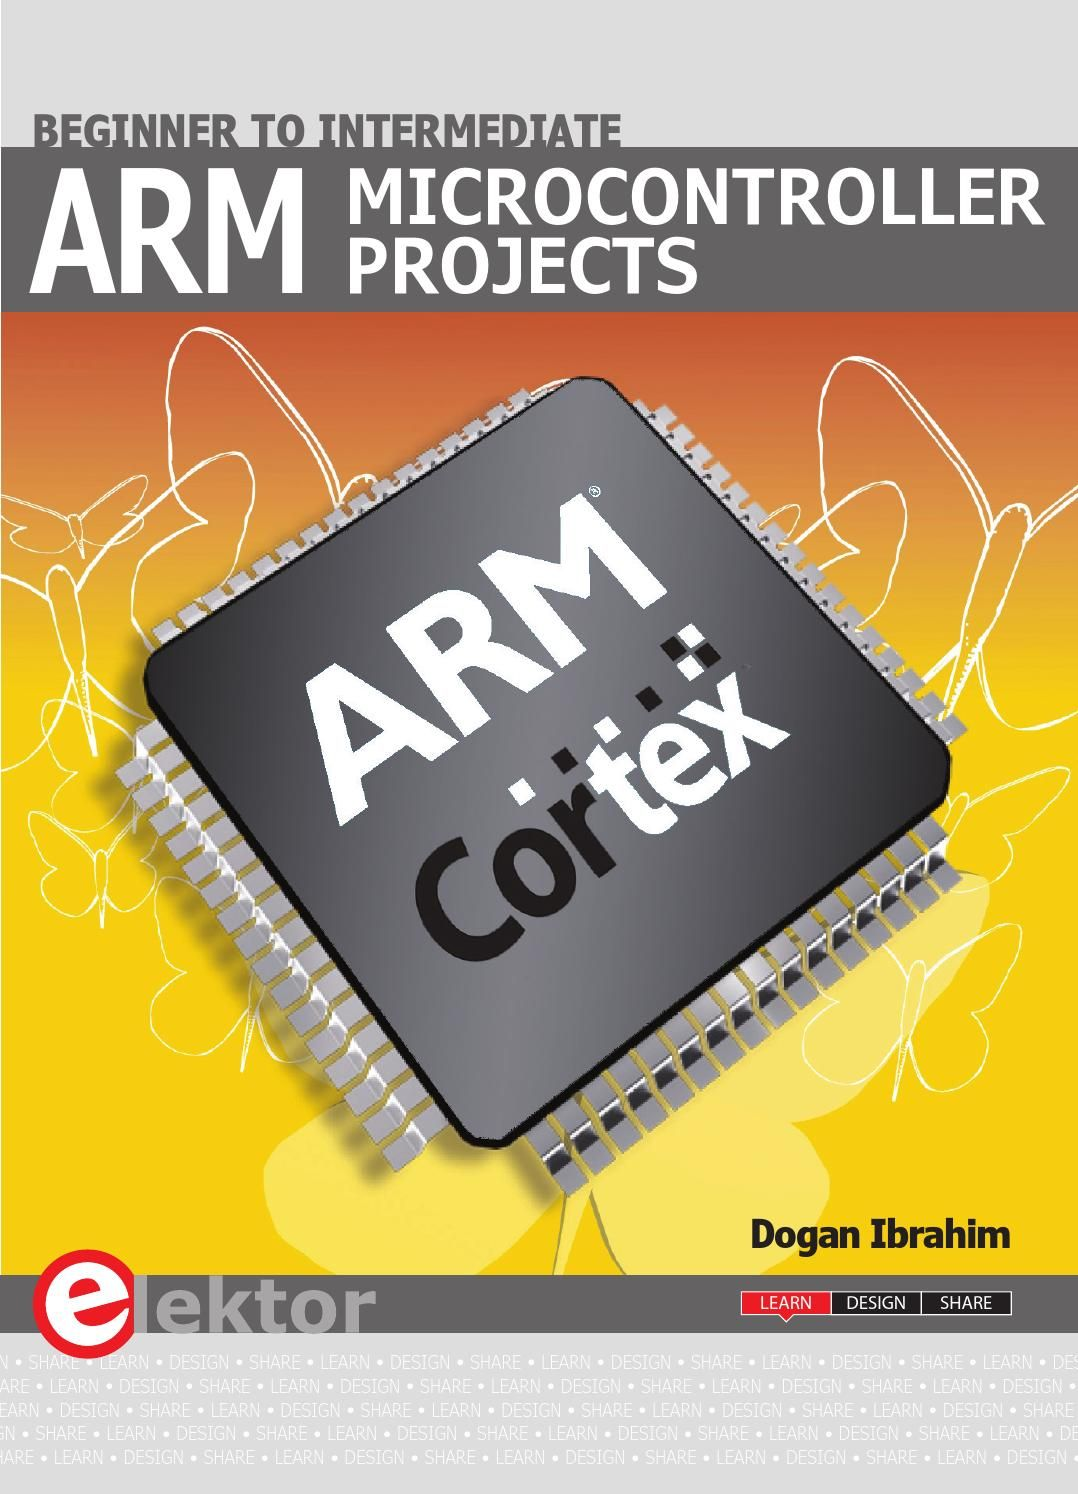 Arm Microcontroller Projects Low Cost Microcontrollers Dev Kit It Gives A Detailed Introduction To The Architecture Of Cortex M Family Examples Popular Hardware And Software Development Kits